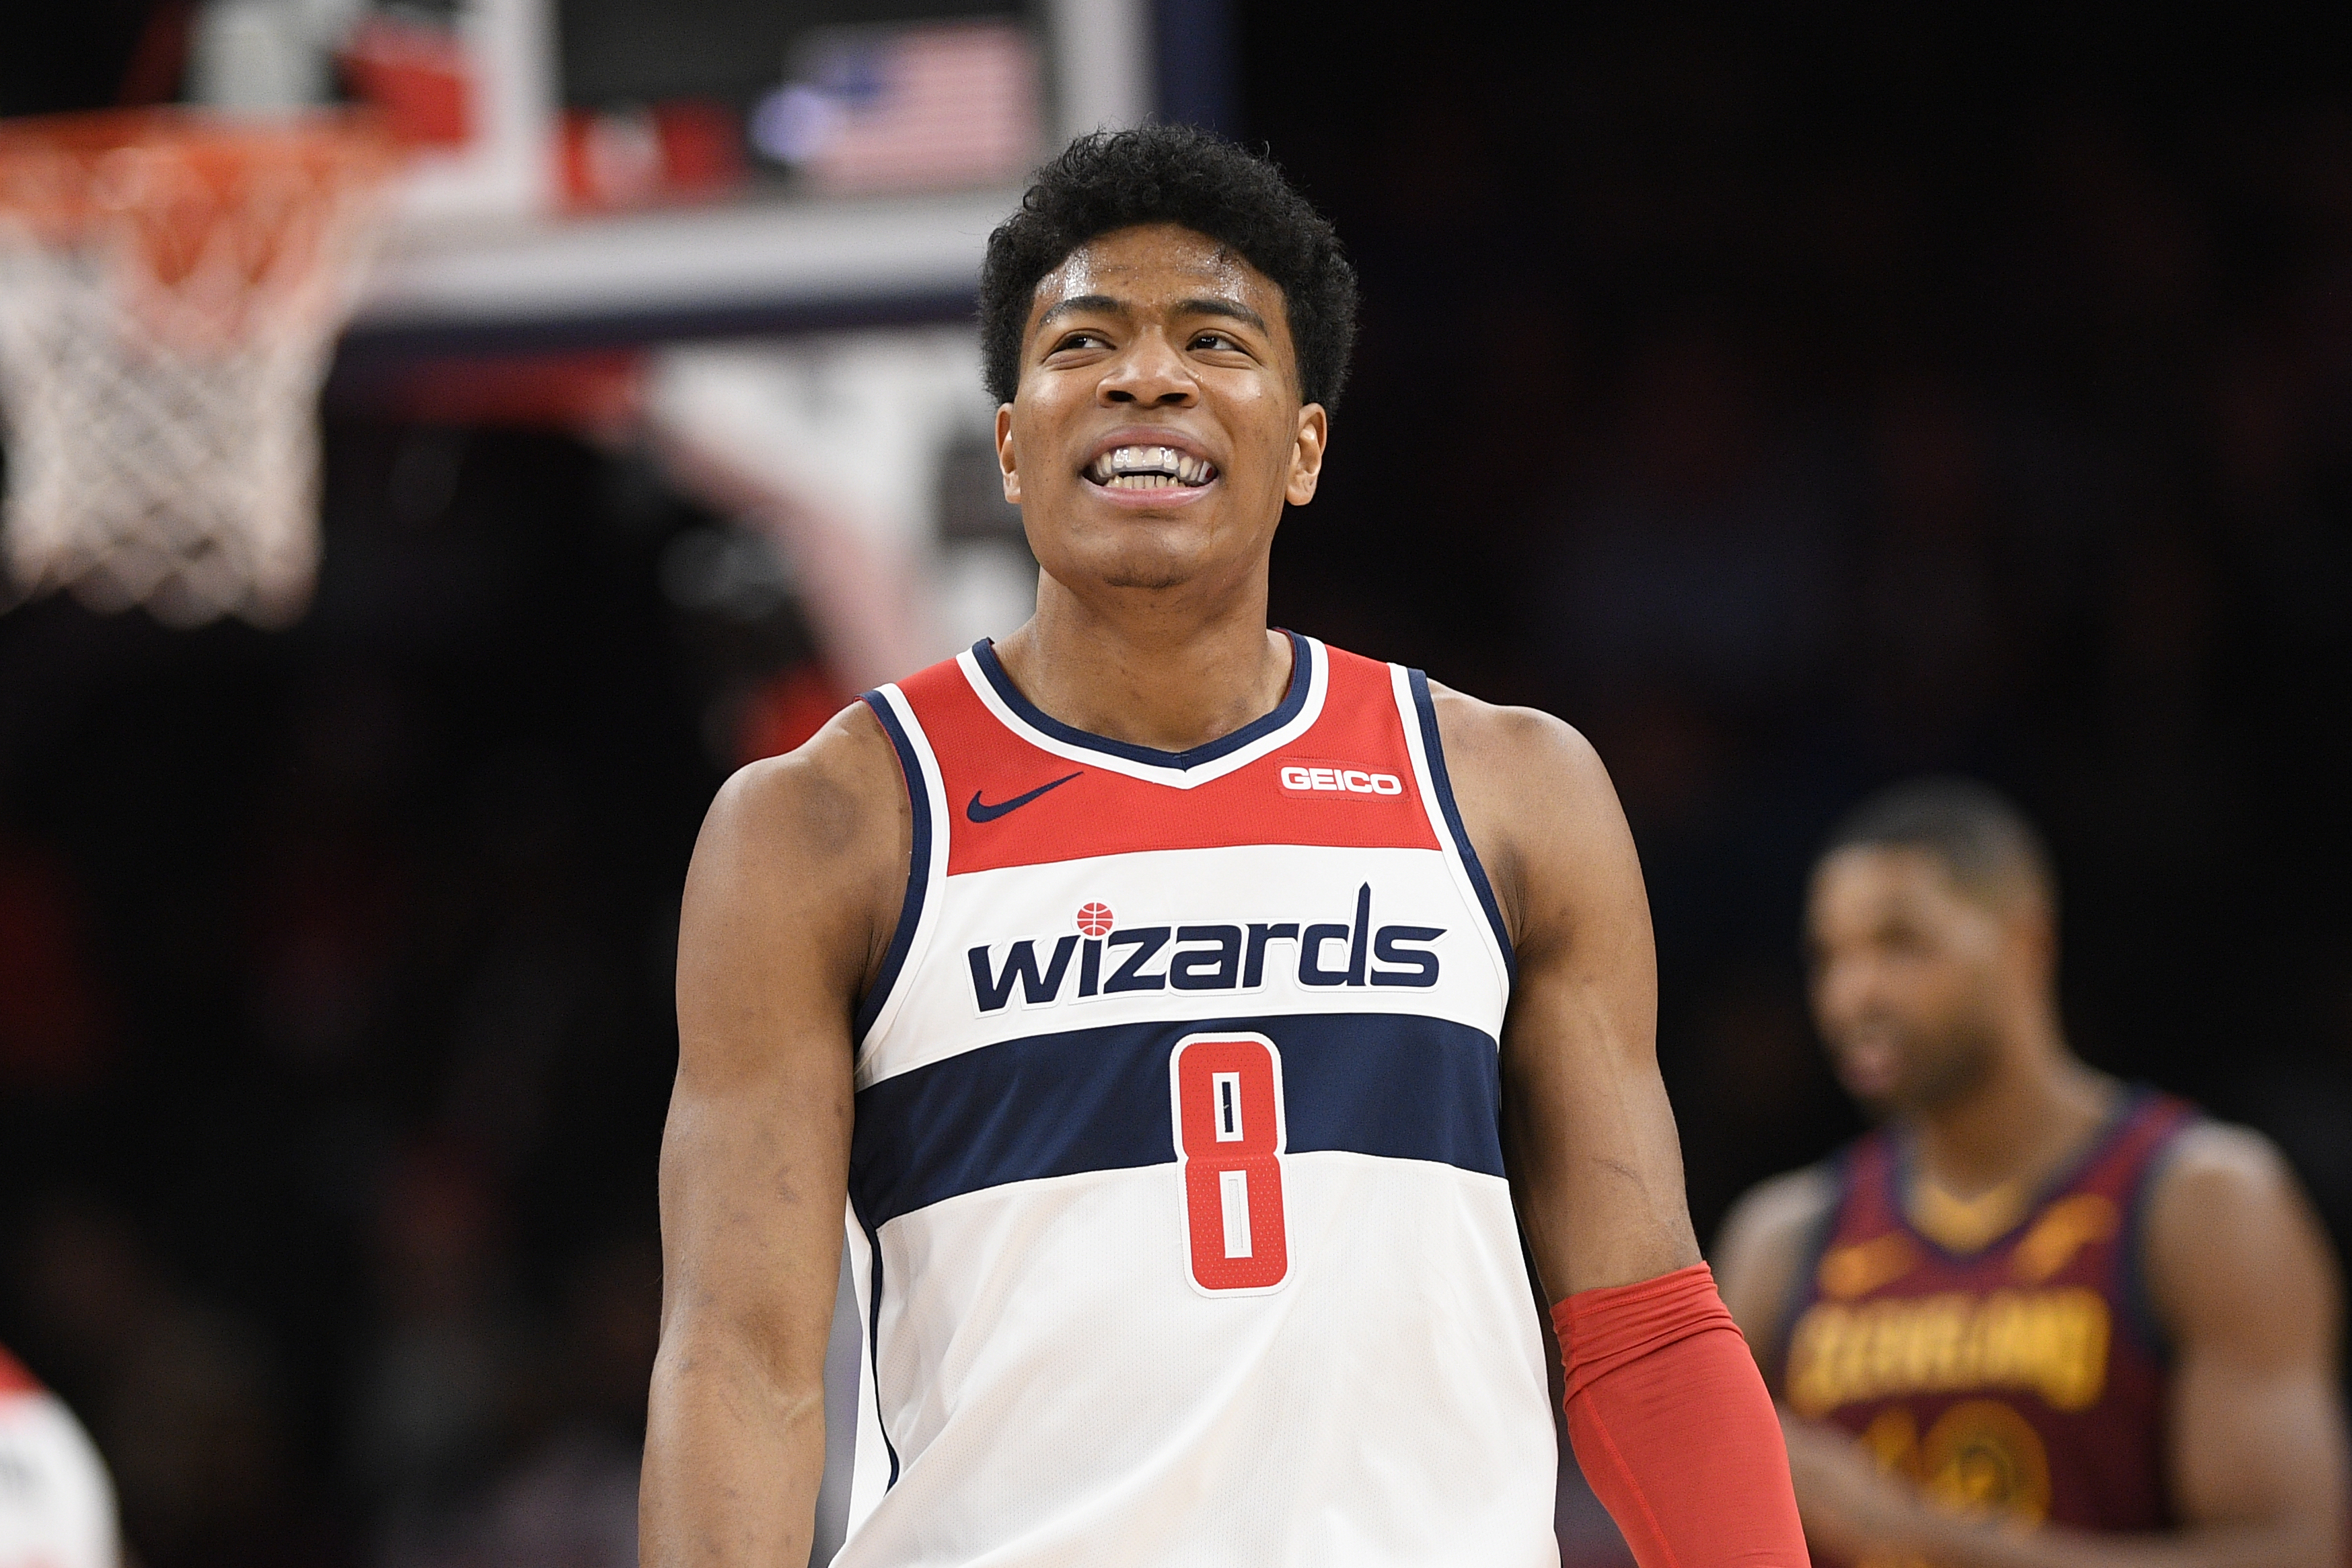 Wizards business executives head to Japan as Rui Hachimura's popularity grows